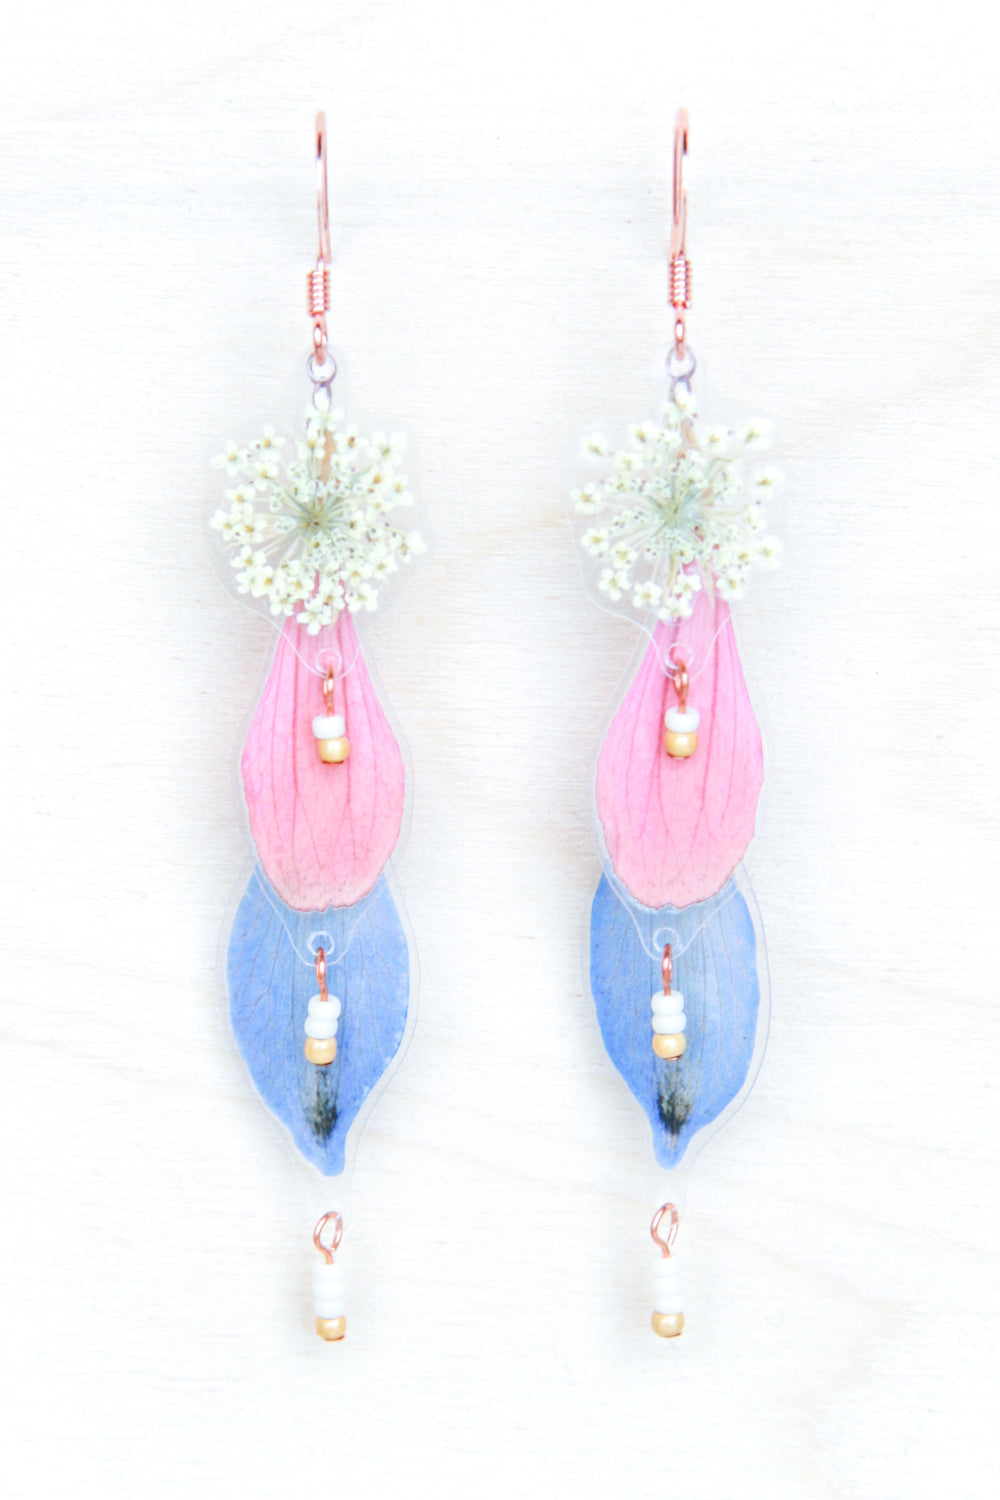 Pink Zinnia + Blue Delphinium + White Queen Anne's Lace Flower Bouquet Earrings